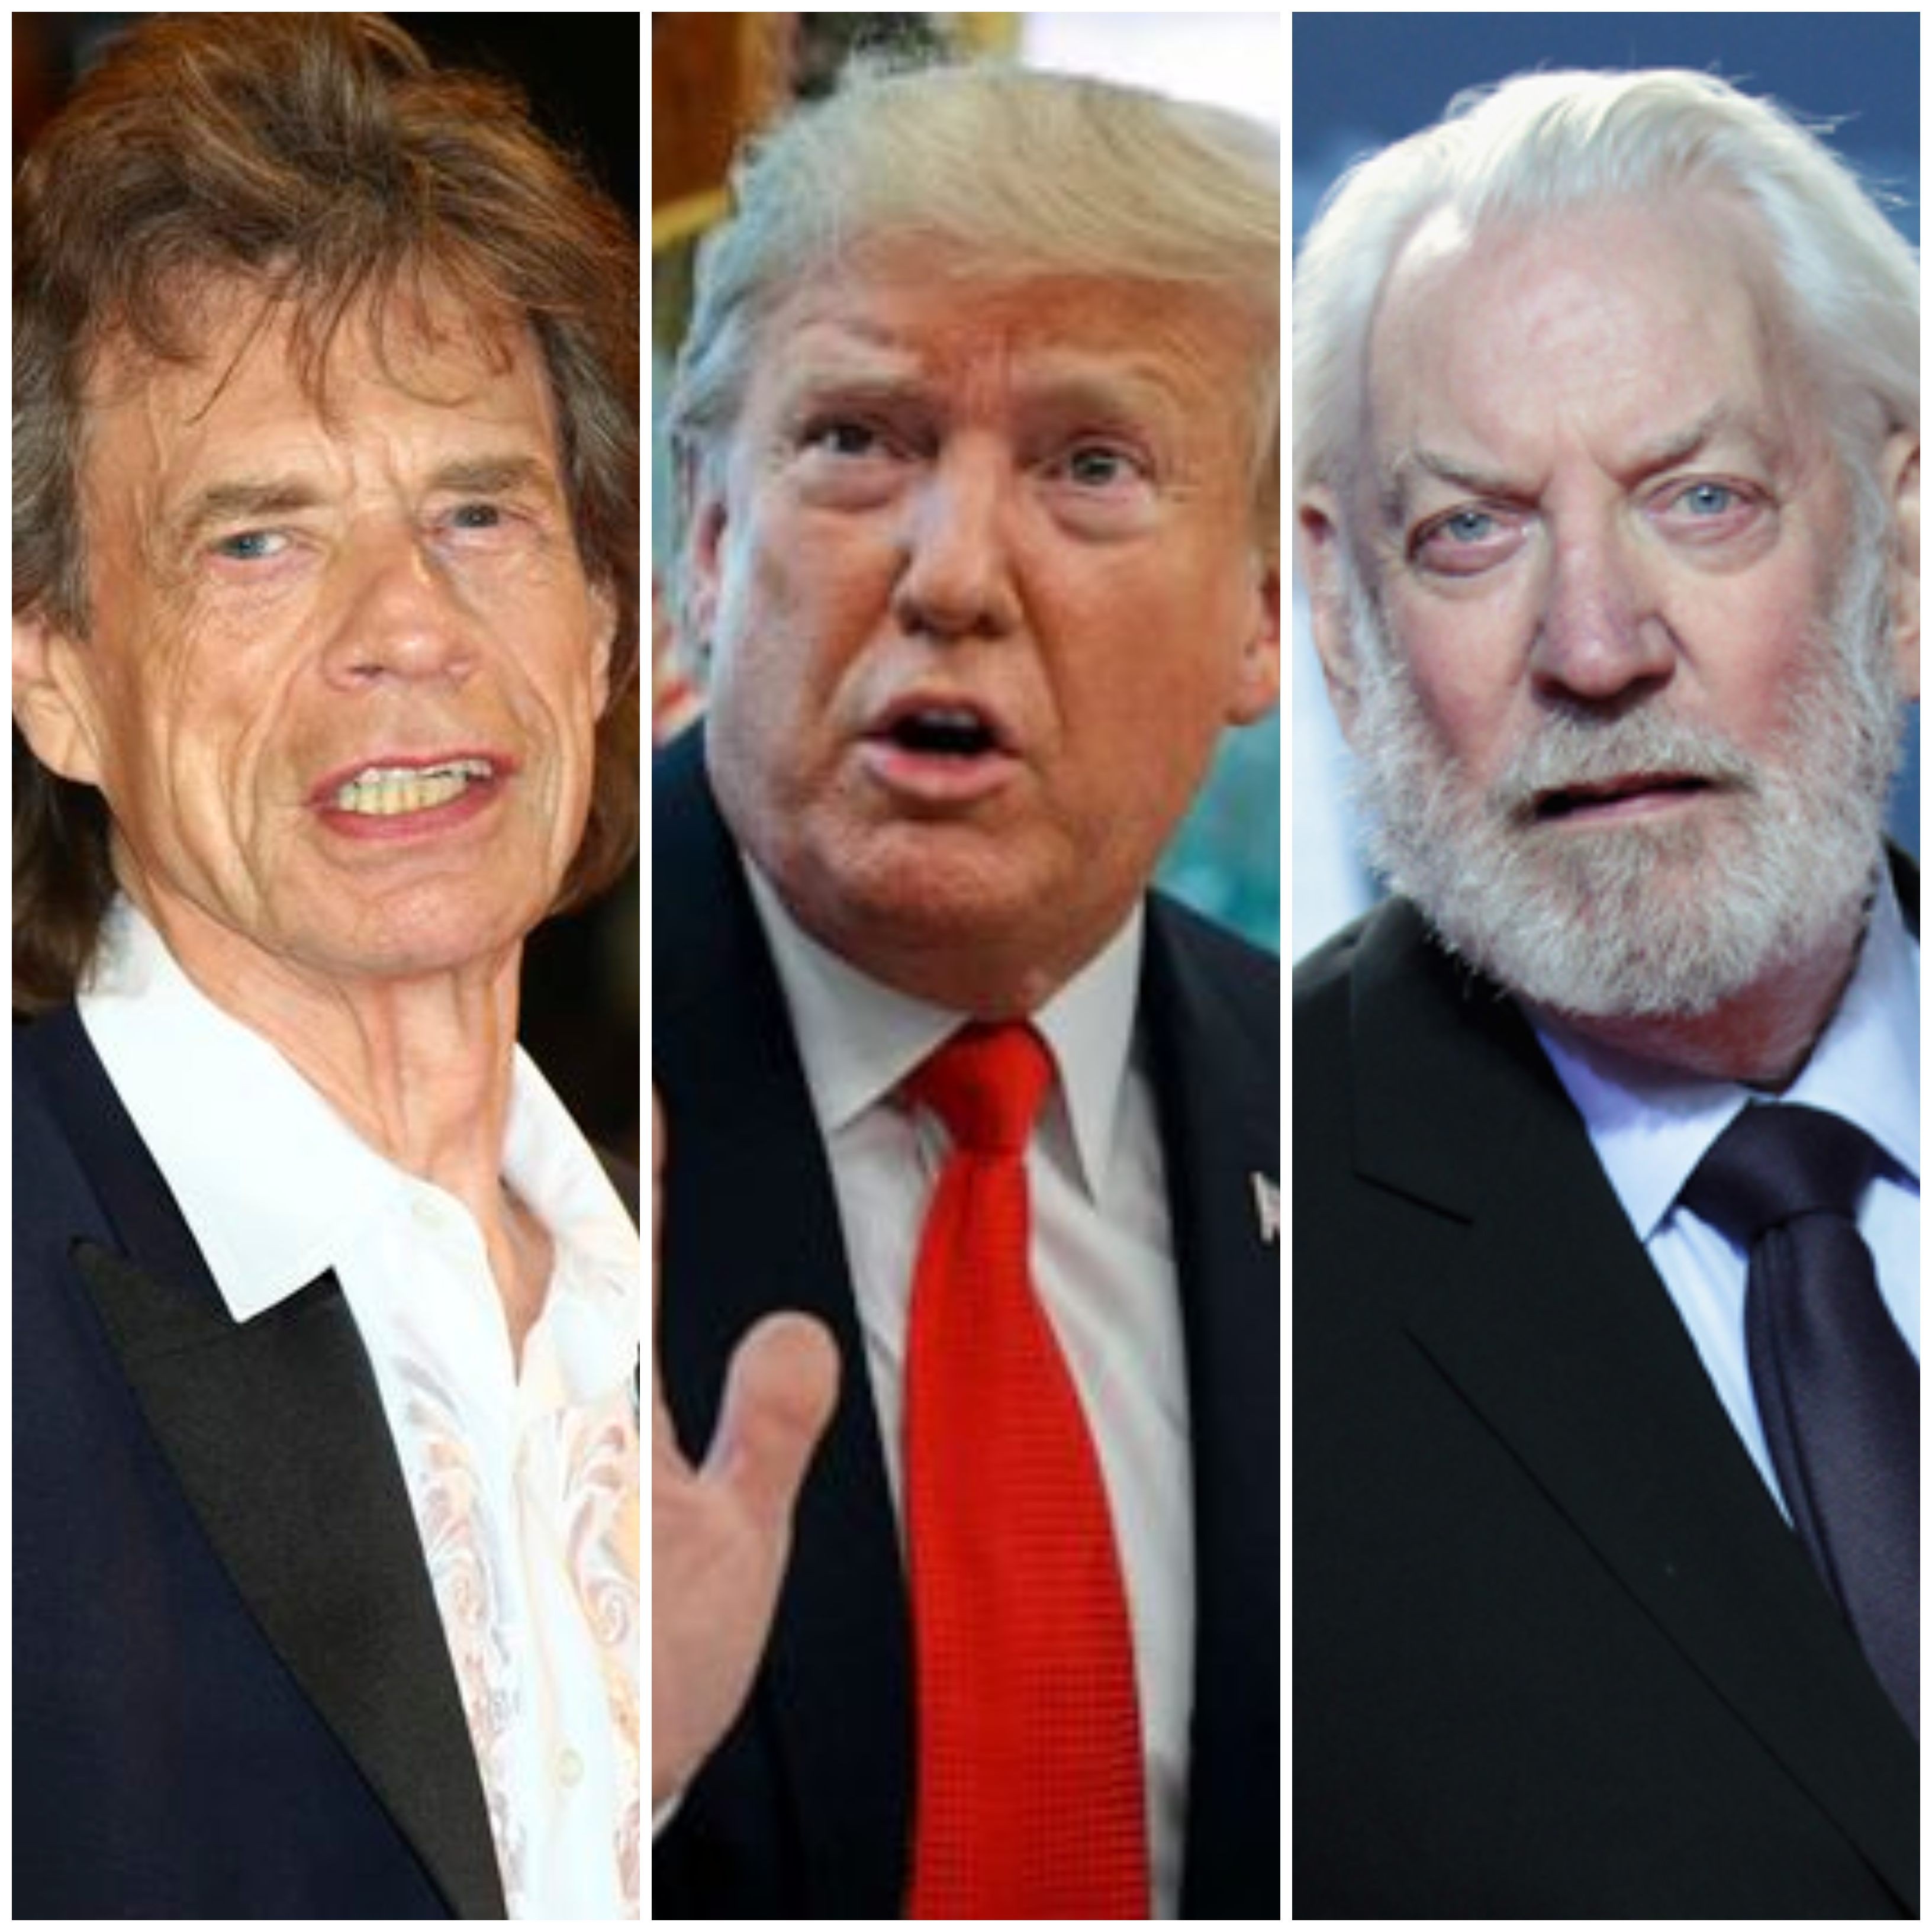 celebrities slam donald trump for lack of fight against climate change